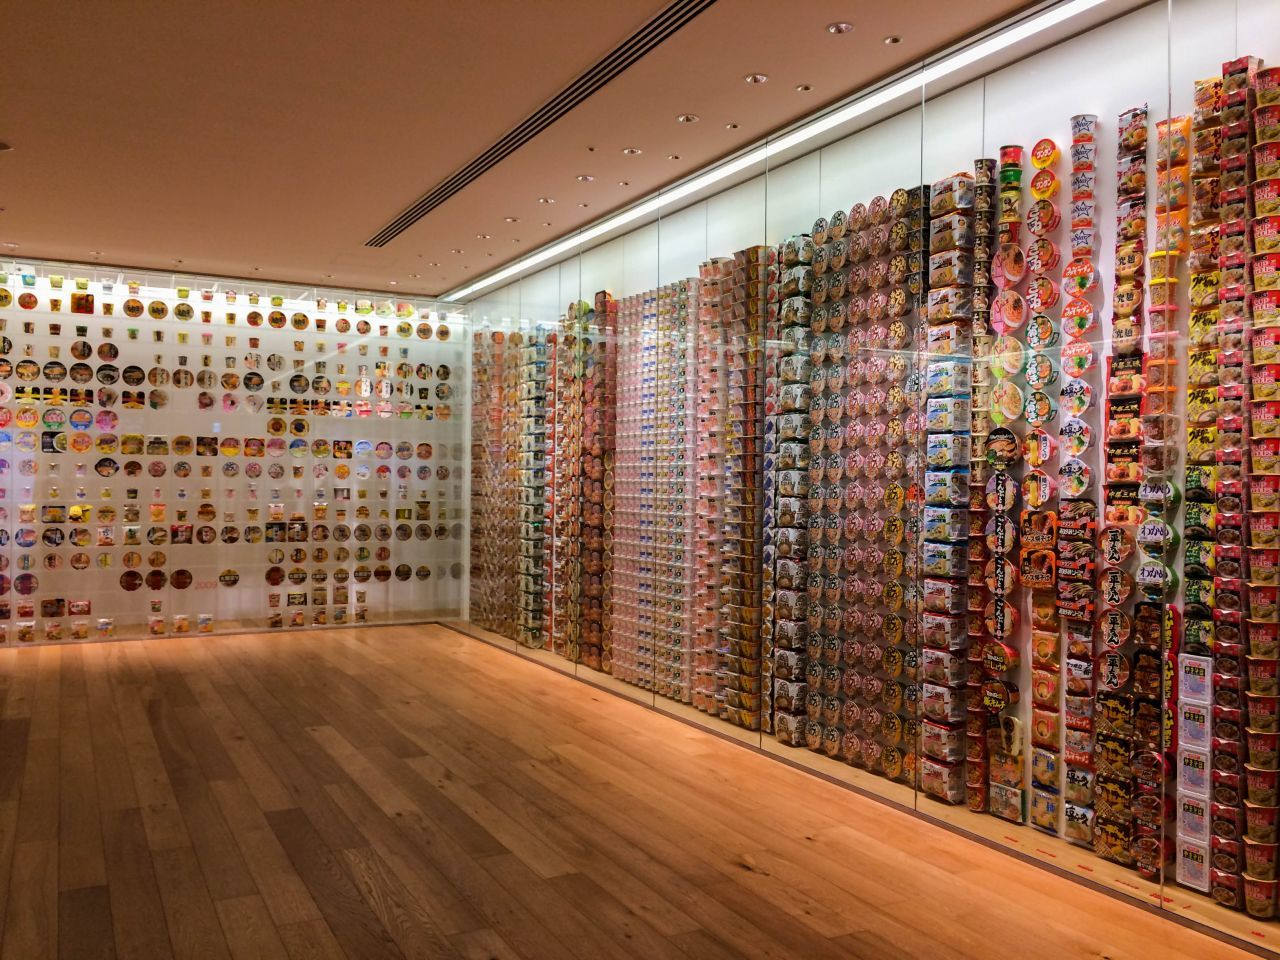 Cup Noodles Museum Showcase of Japanese Instant Ramen